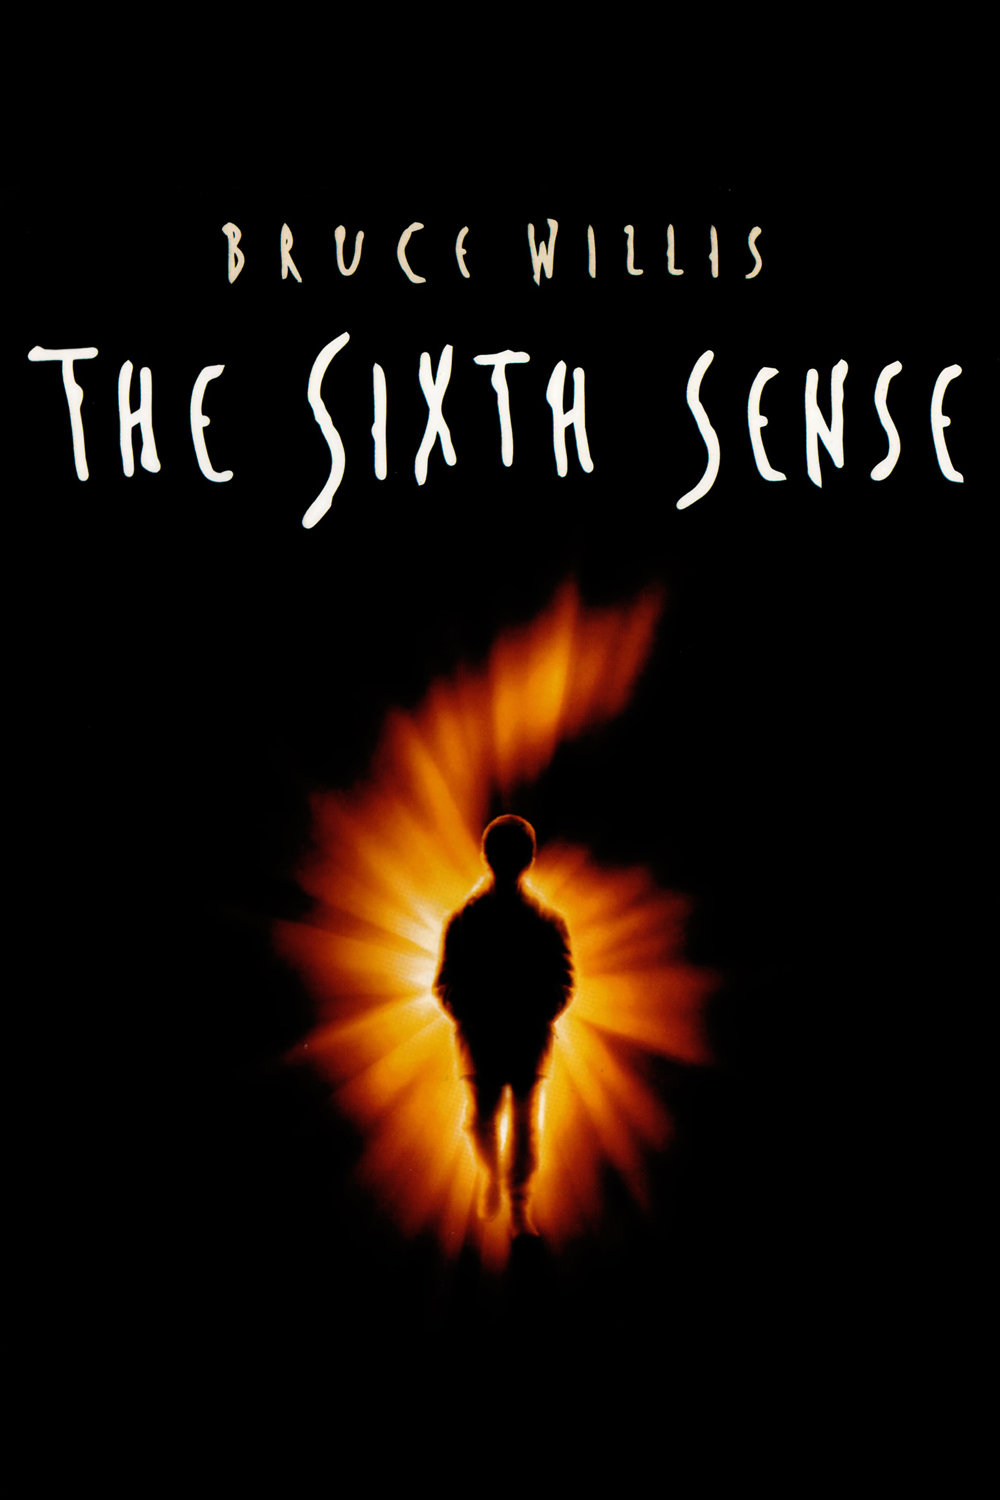 The sixth sense dvd report